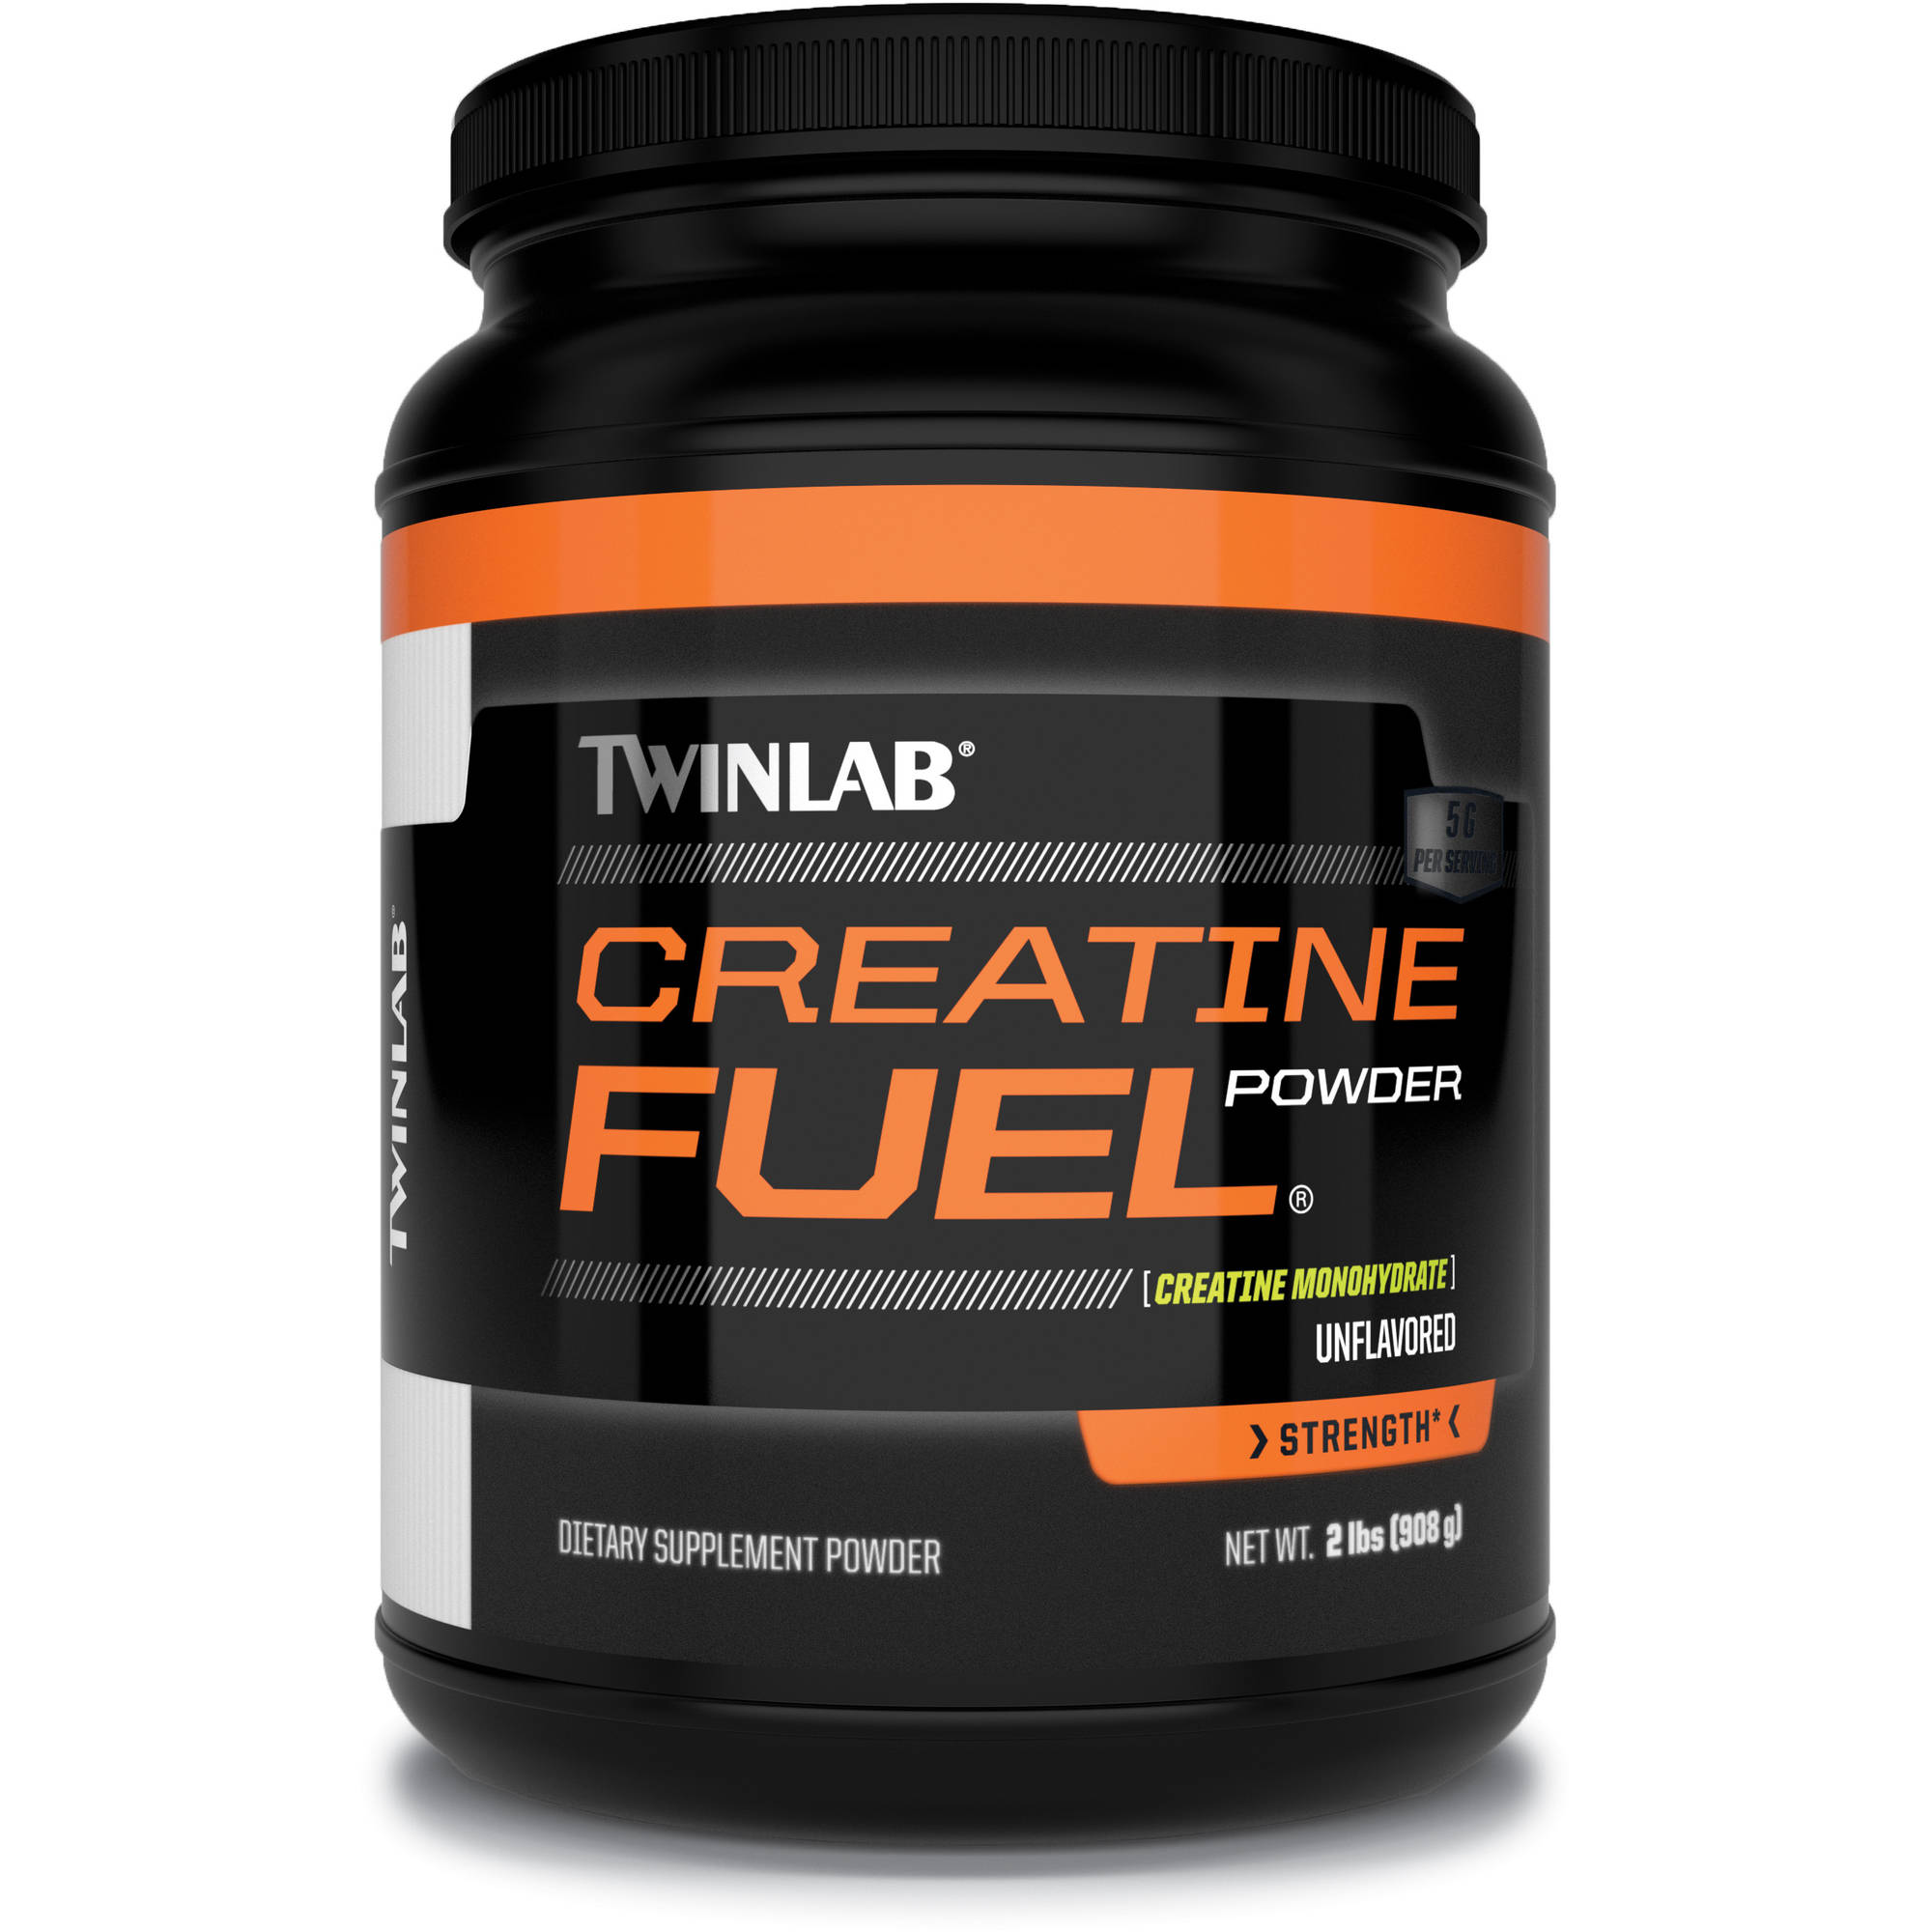 Twinlab Creatine Fuel - Powder - Unflavored - 2 lb